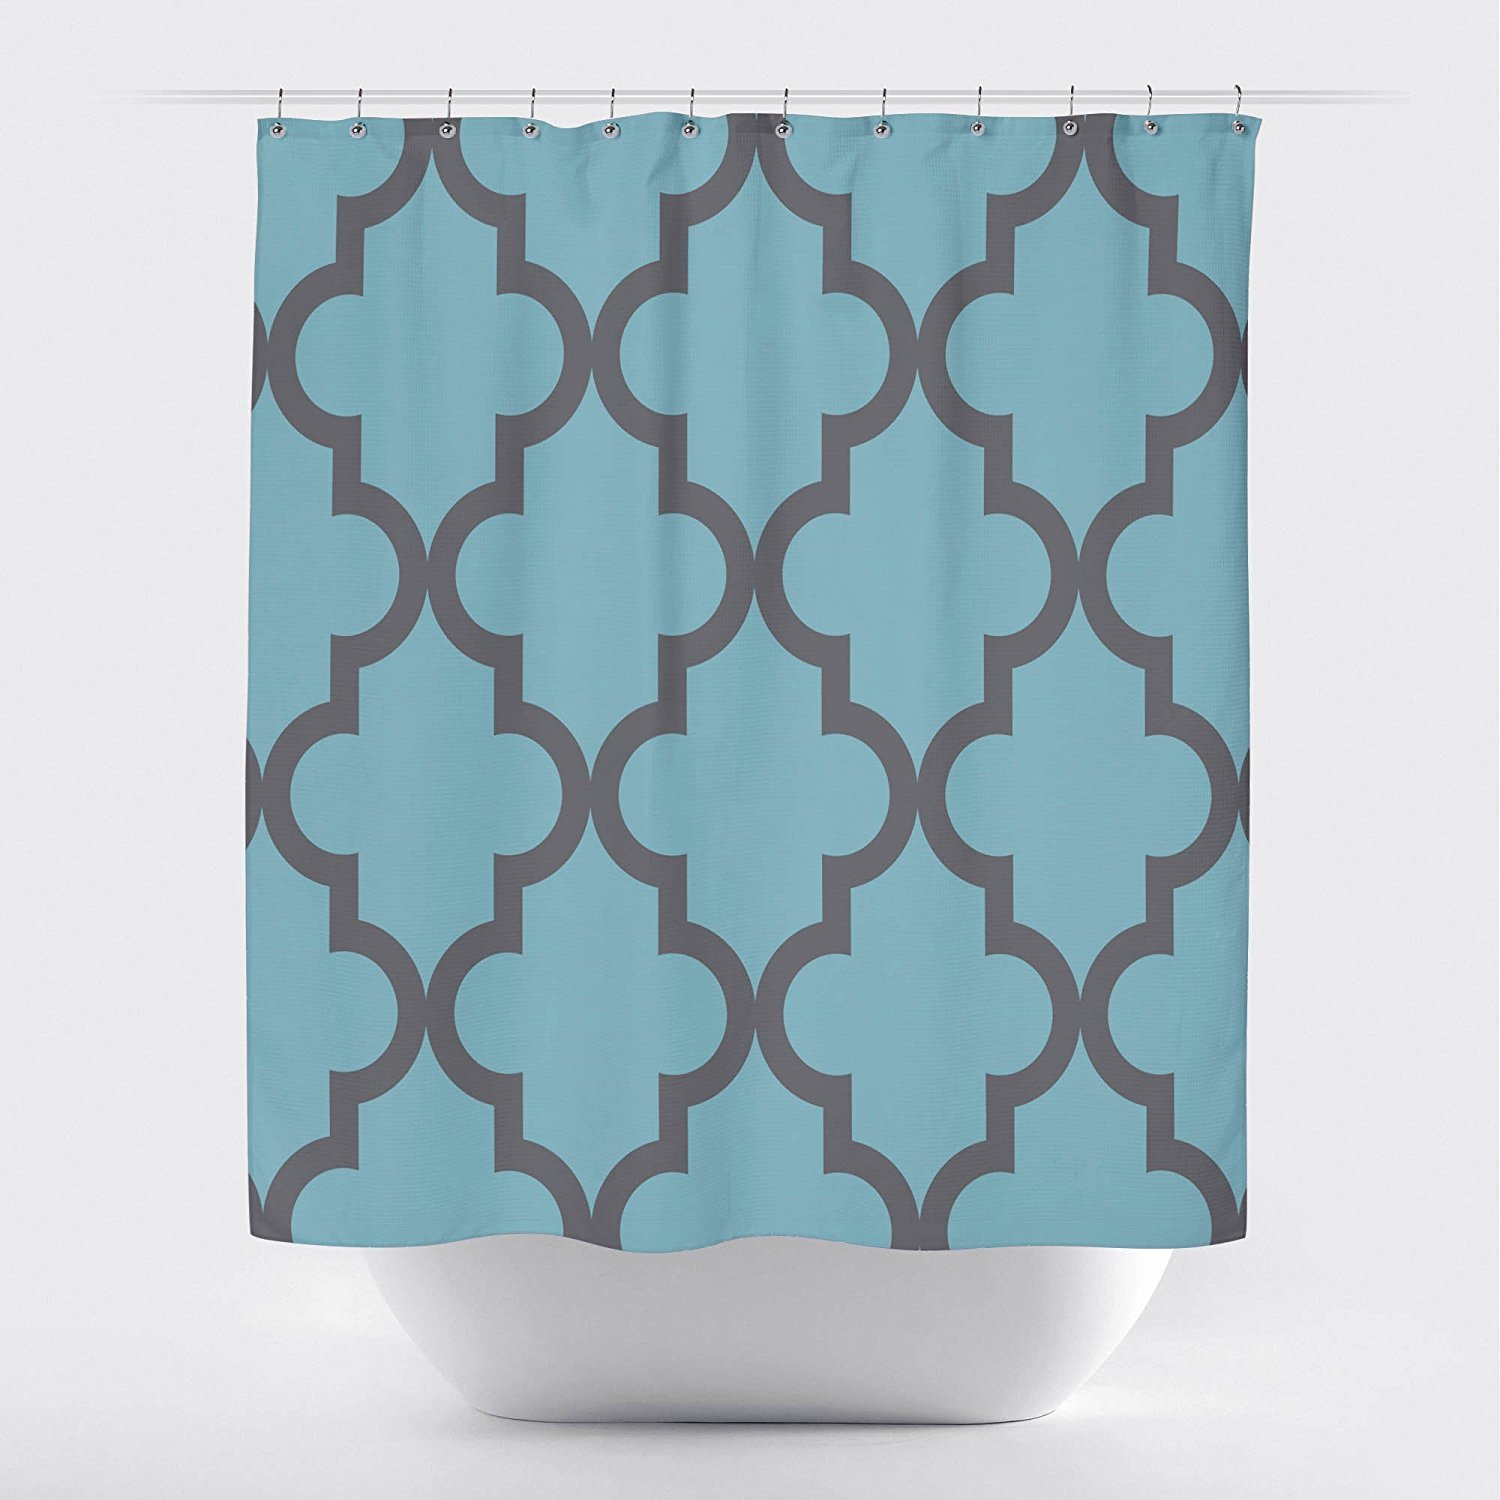 Amazon Studios Scalloped Shower CurtainLarge Gray On Light Blue By Crystal Emotion Home Kitchen